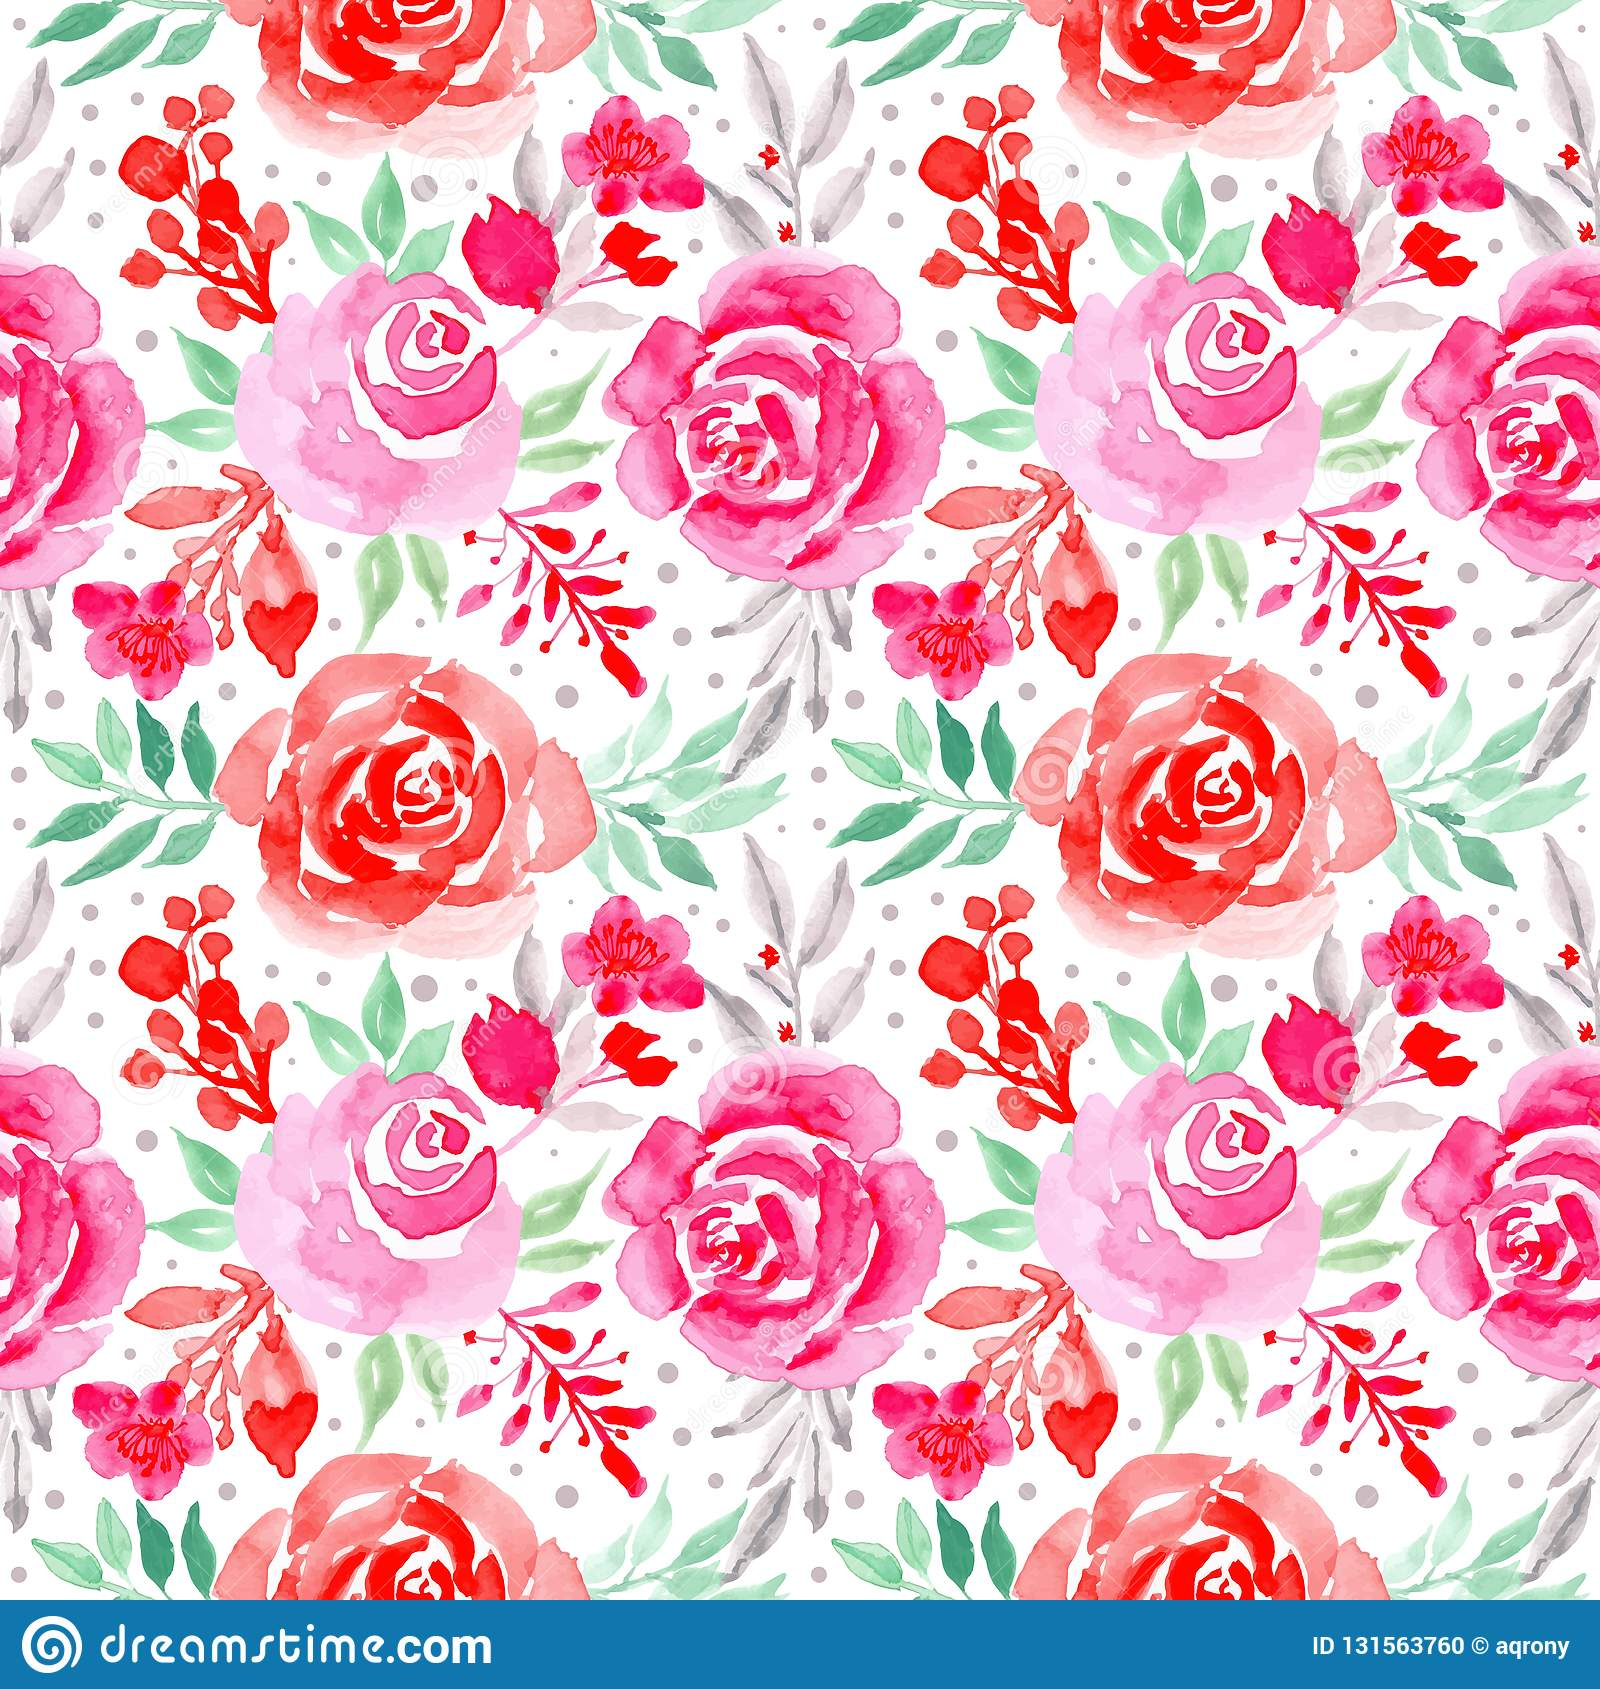 Watercolor Floral Pink And Red Flowers Seamless Pattern Stock